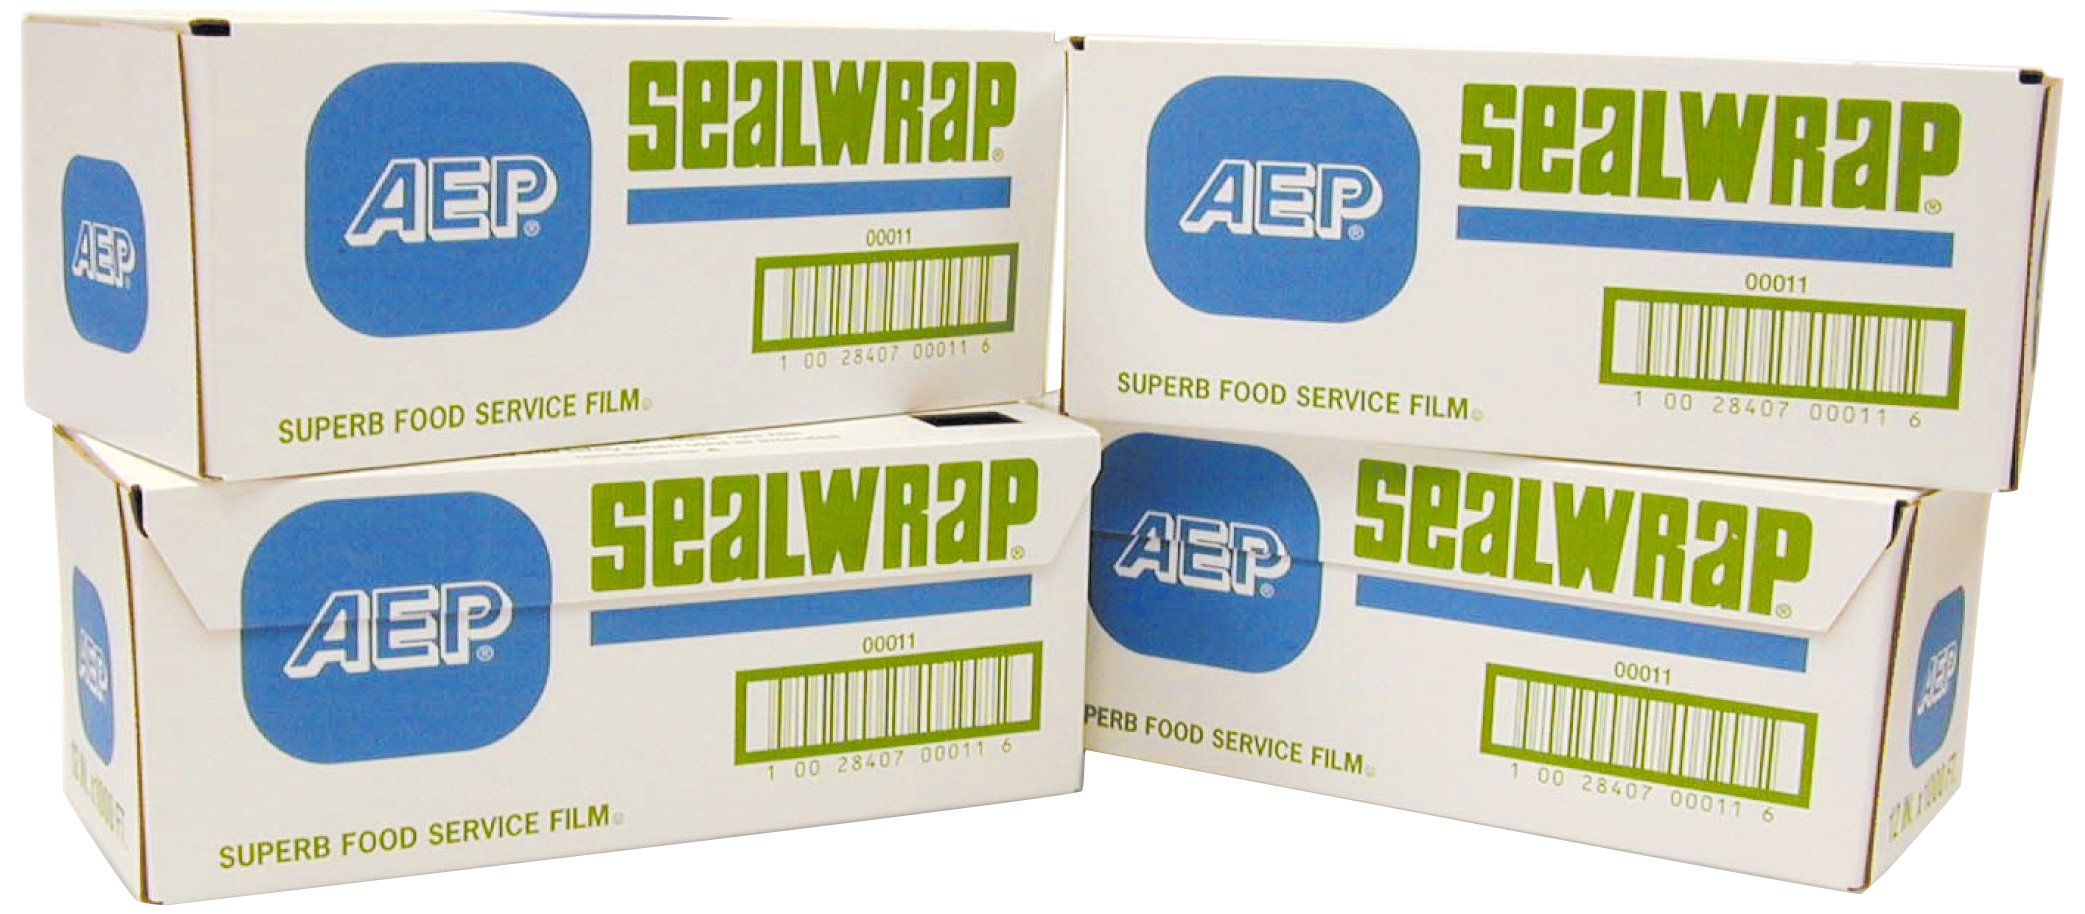 SealWrap Plastic Wrap, 18'' Wide by 1000' Length, PVC, Clear by SealWrap